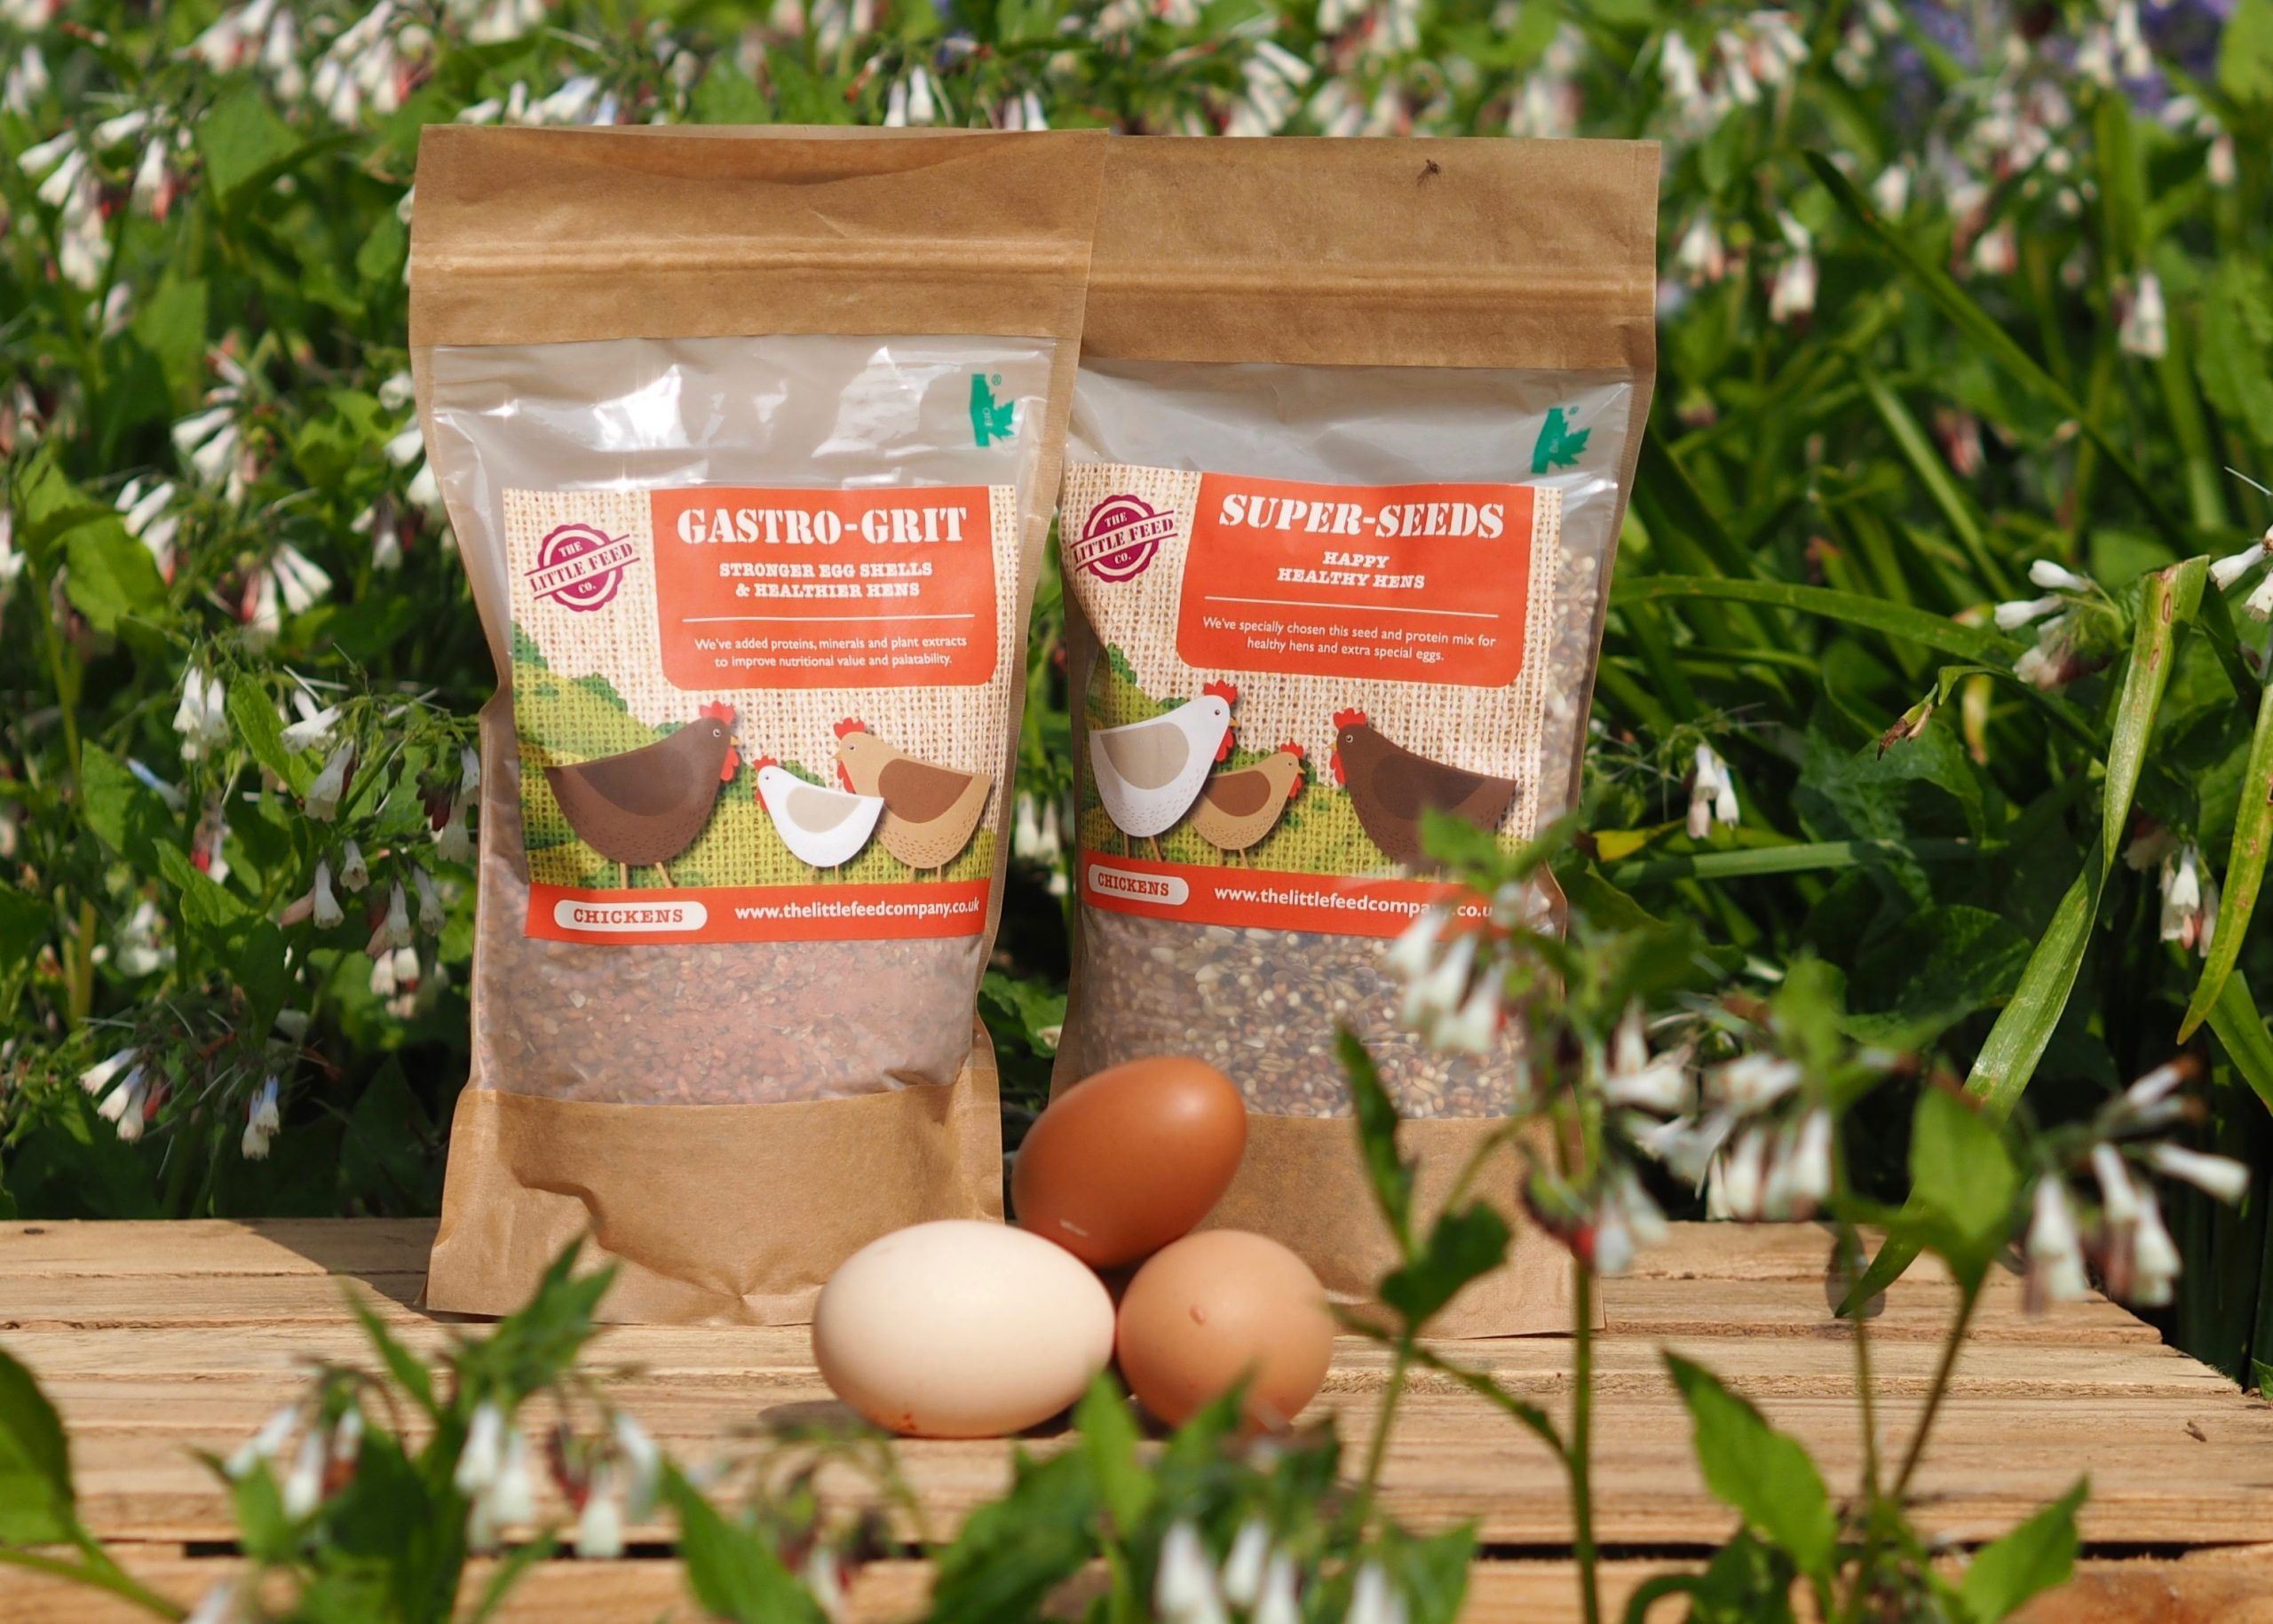 Gastro Grit, Super Seeds, The little feed company, the best chicken grit, chicken grit